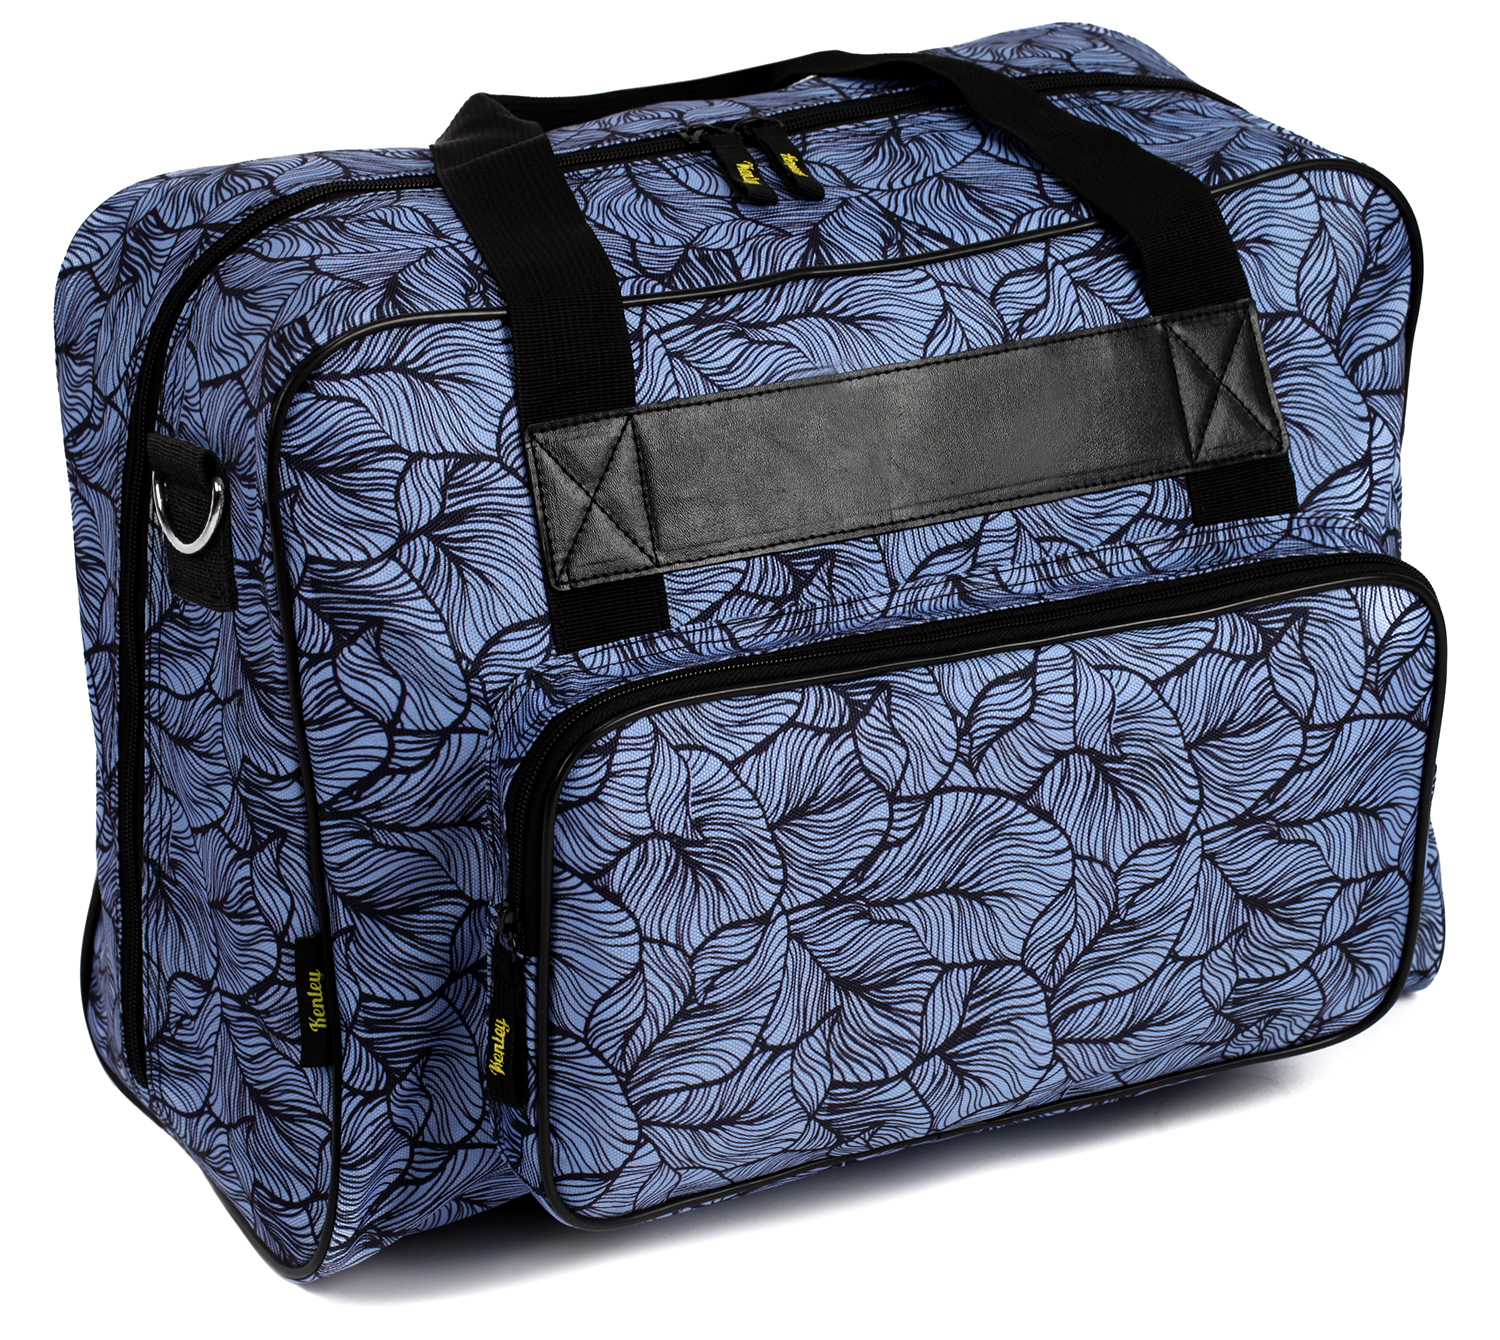 Kenley Padded Sewing Machine Tote Bag Carrying Case